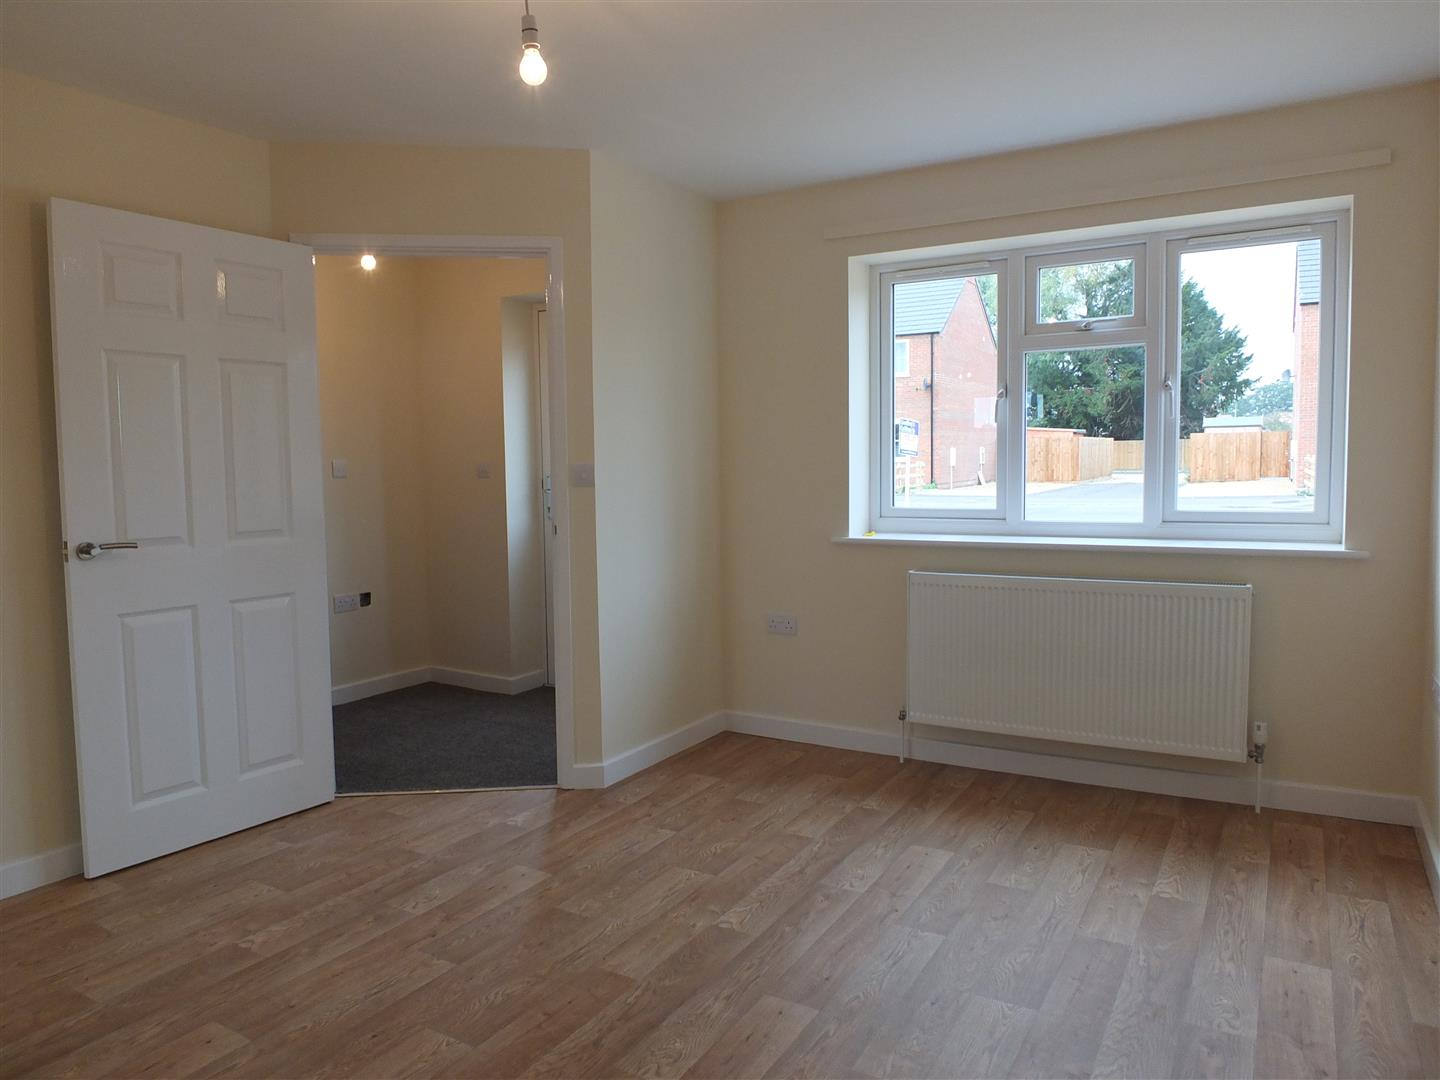 3 bed house to rent in Long Sutton, PE12 9LE 7